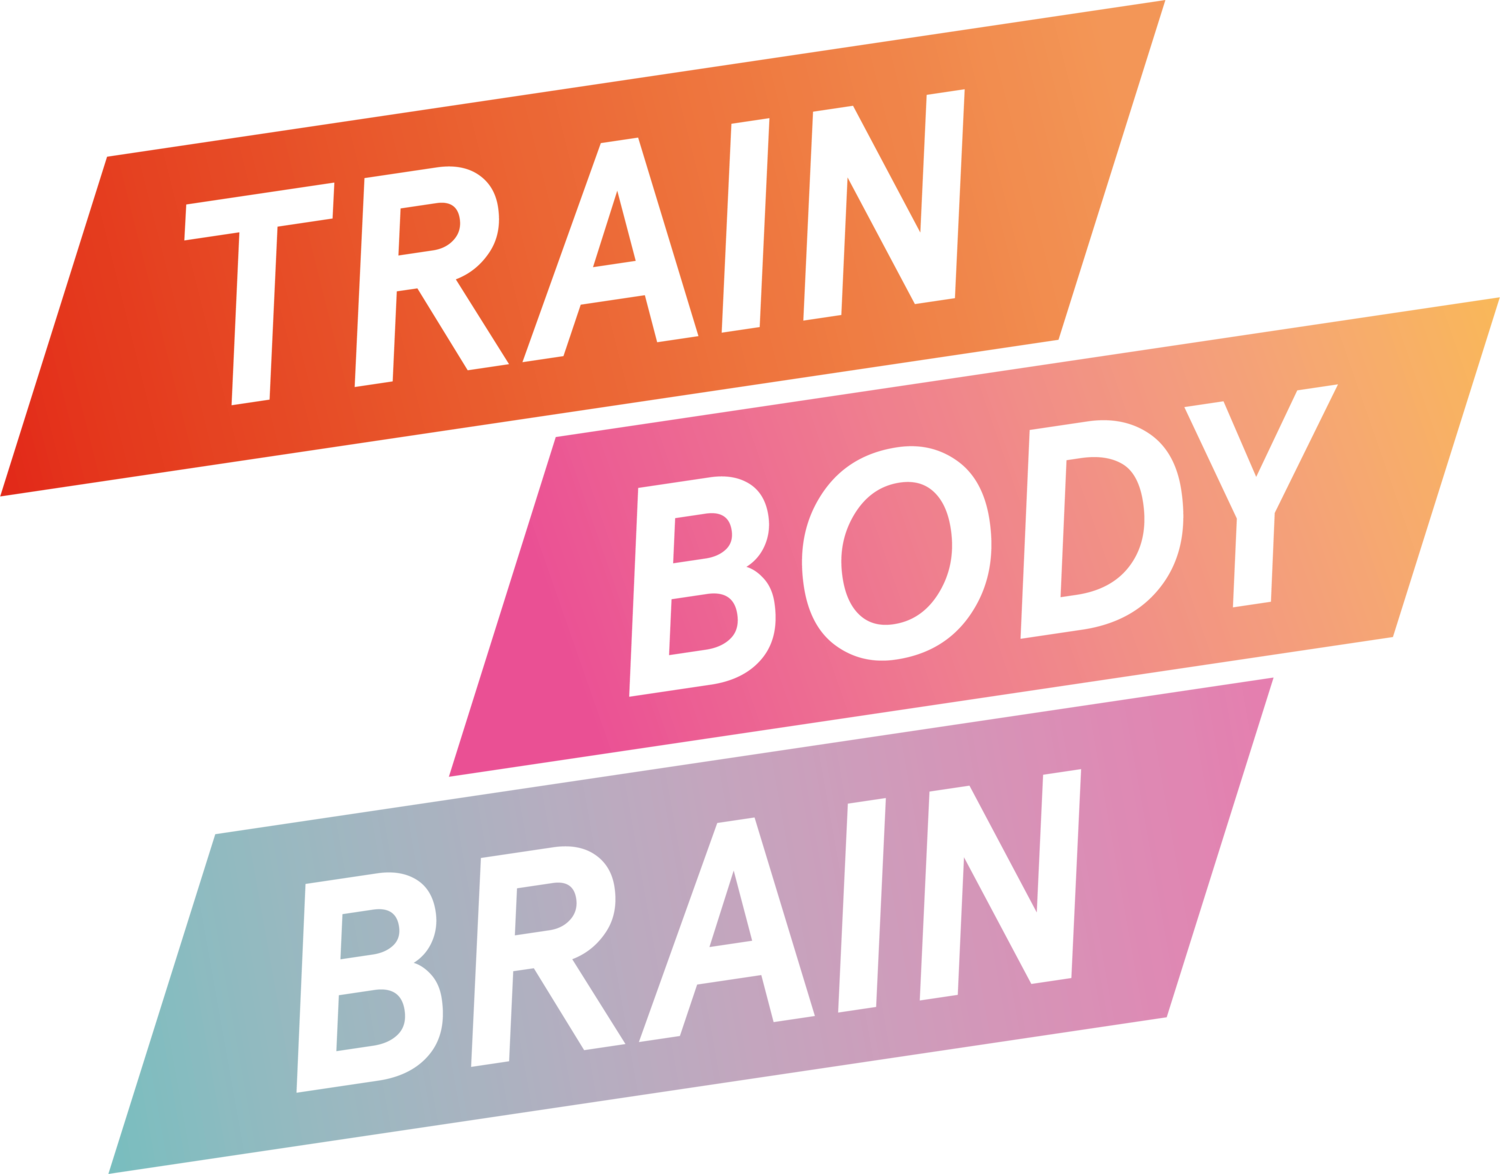 Train Body Brain